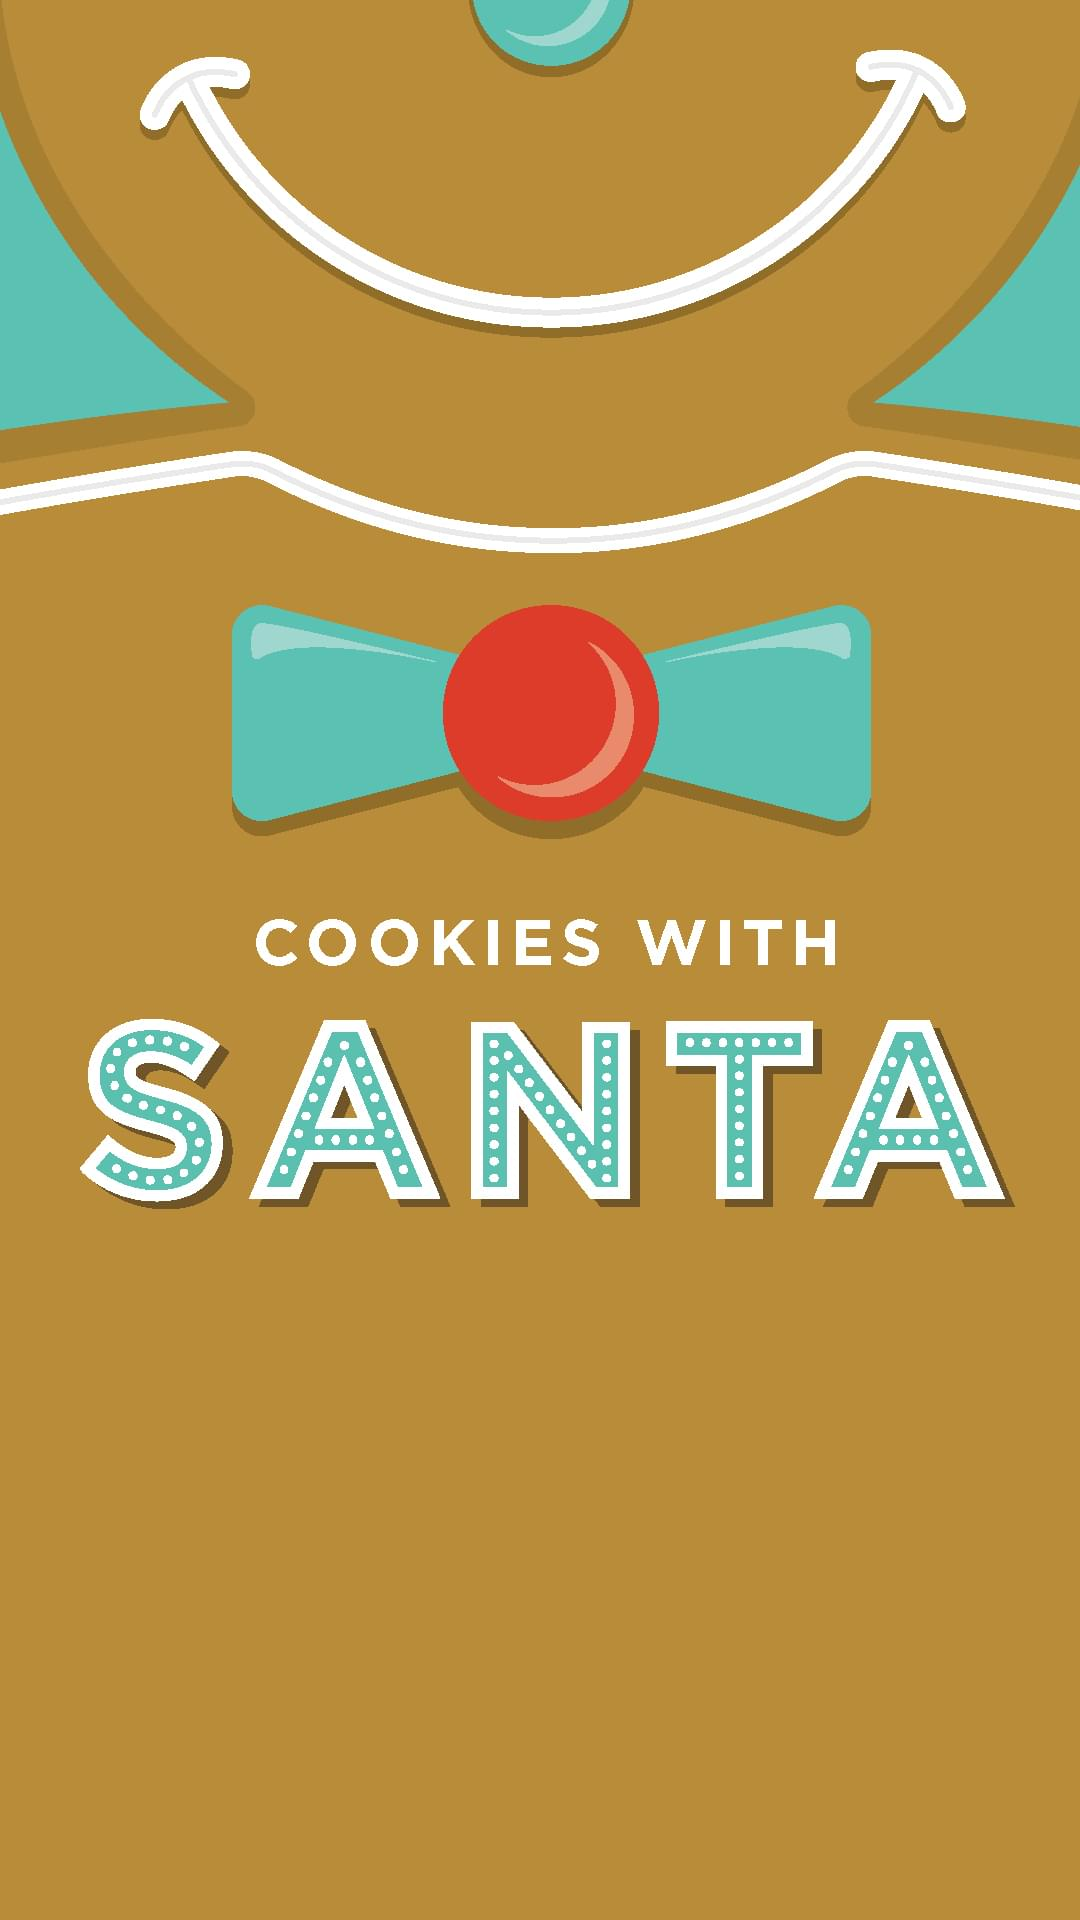 COOKIES WITH SANTA PRESENTED BY POTTERY BARN KIDS December 18